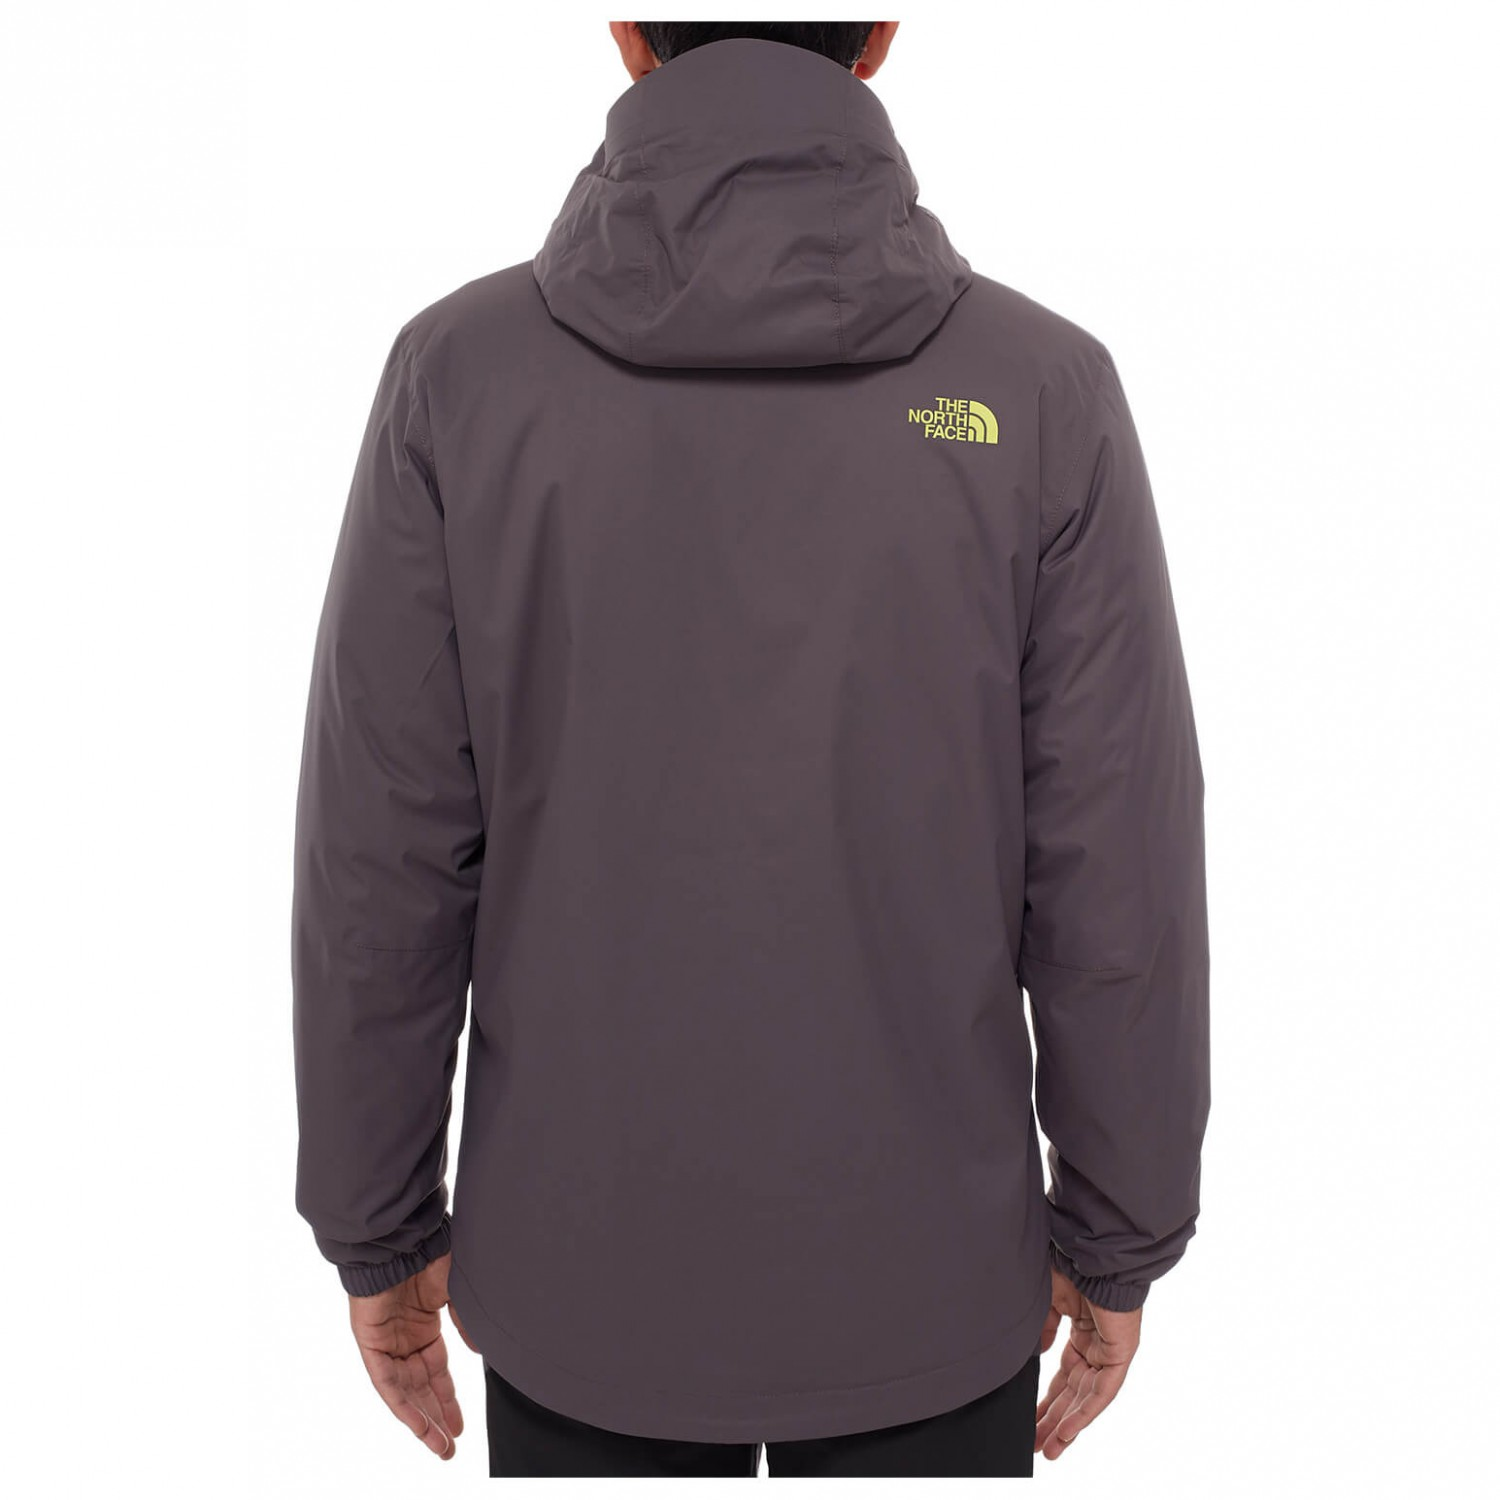 The North Face Quest Insulated Jacket Winter Jacket Men